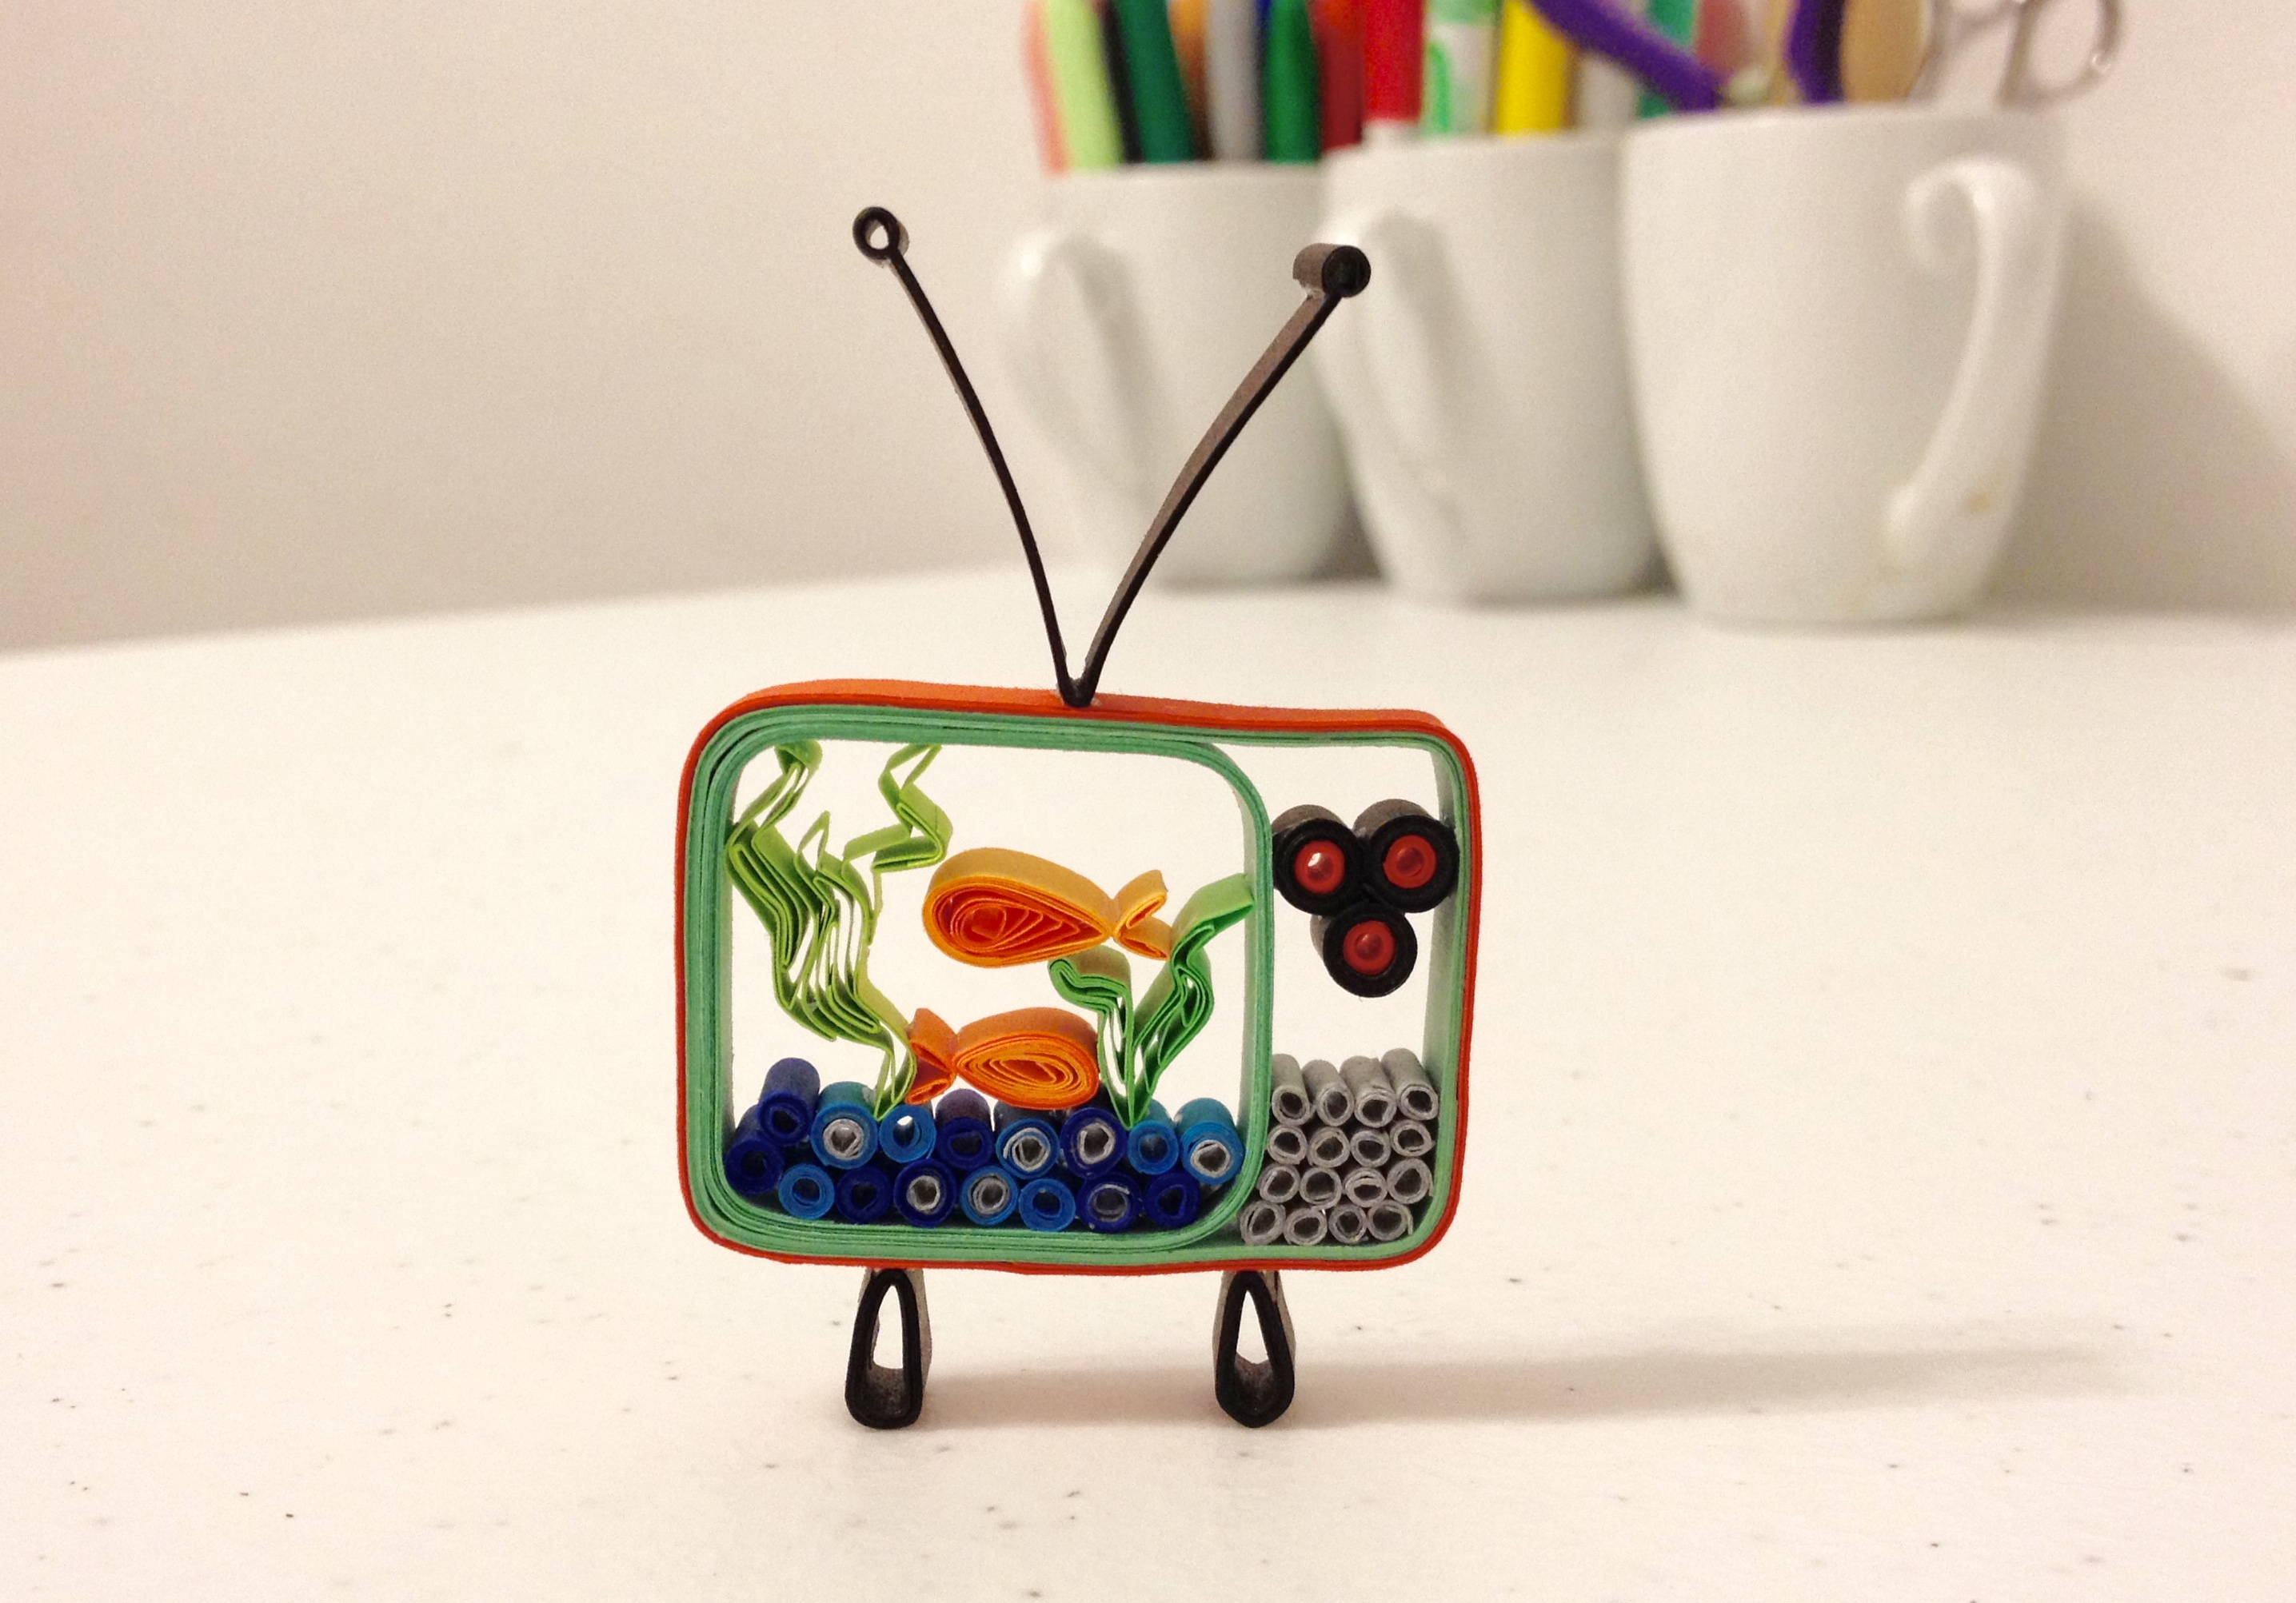 3d quilled television fish tank ornament